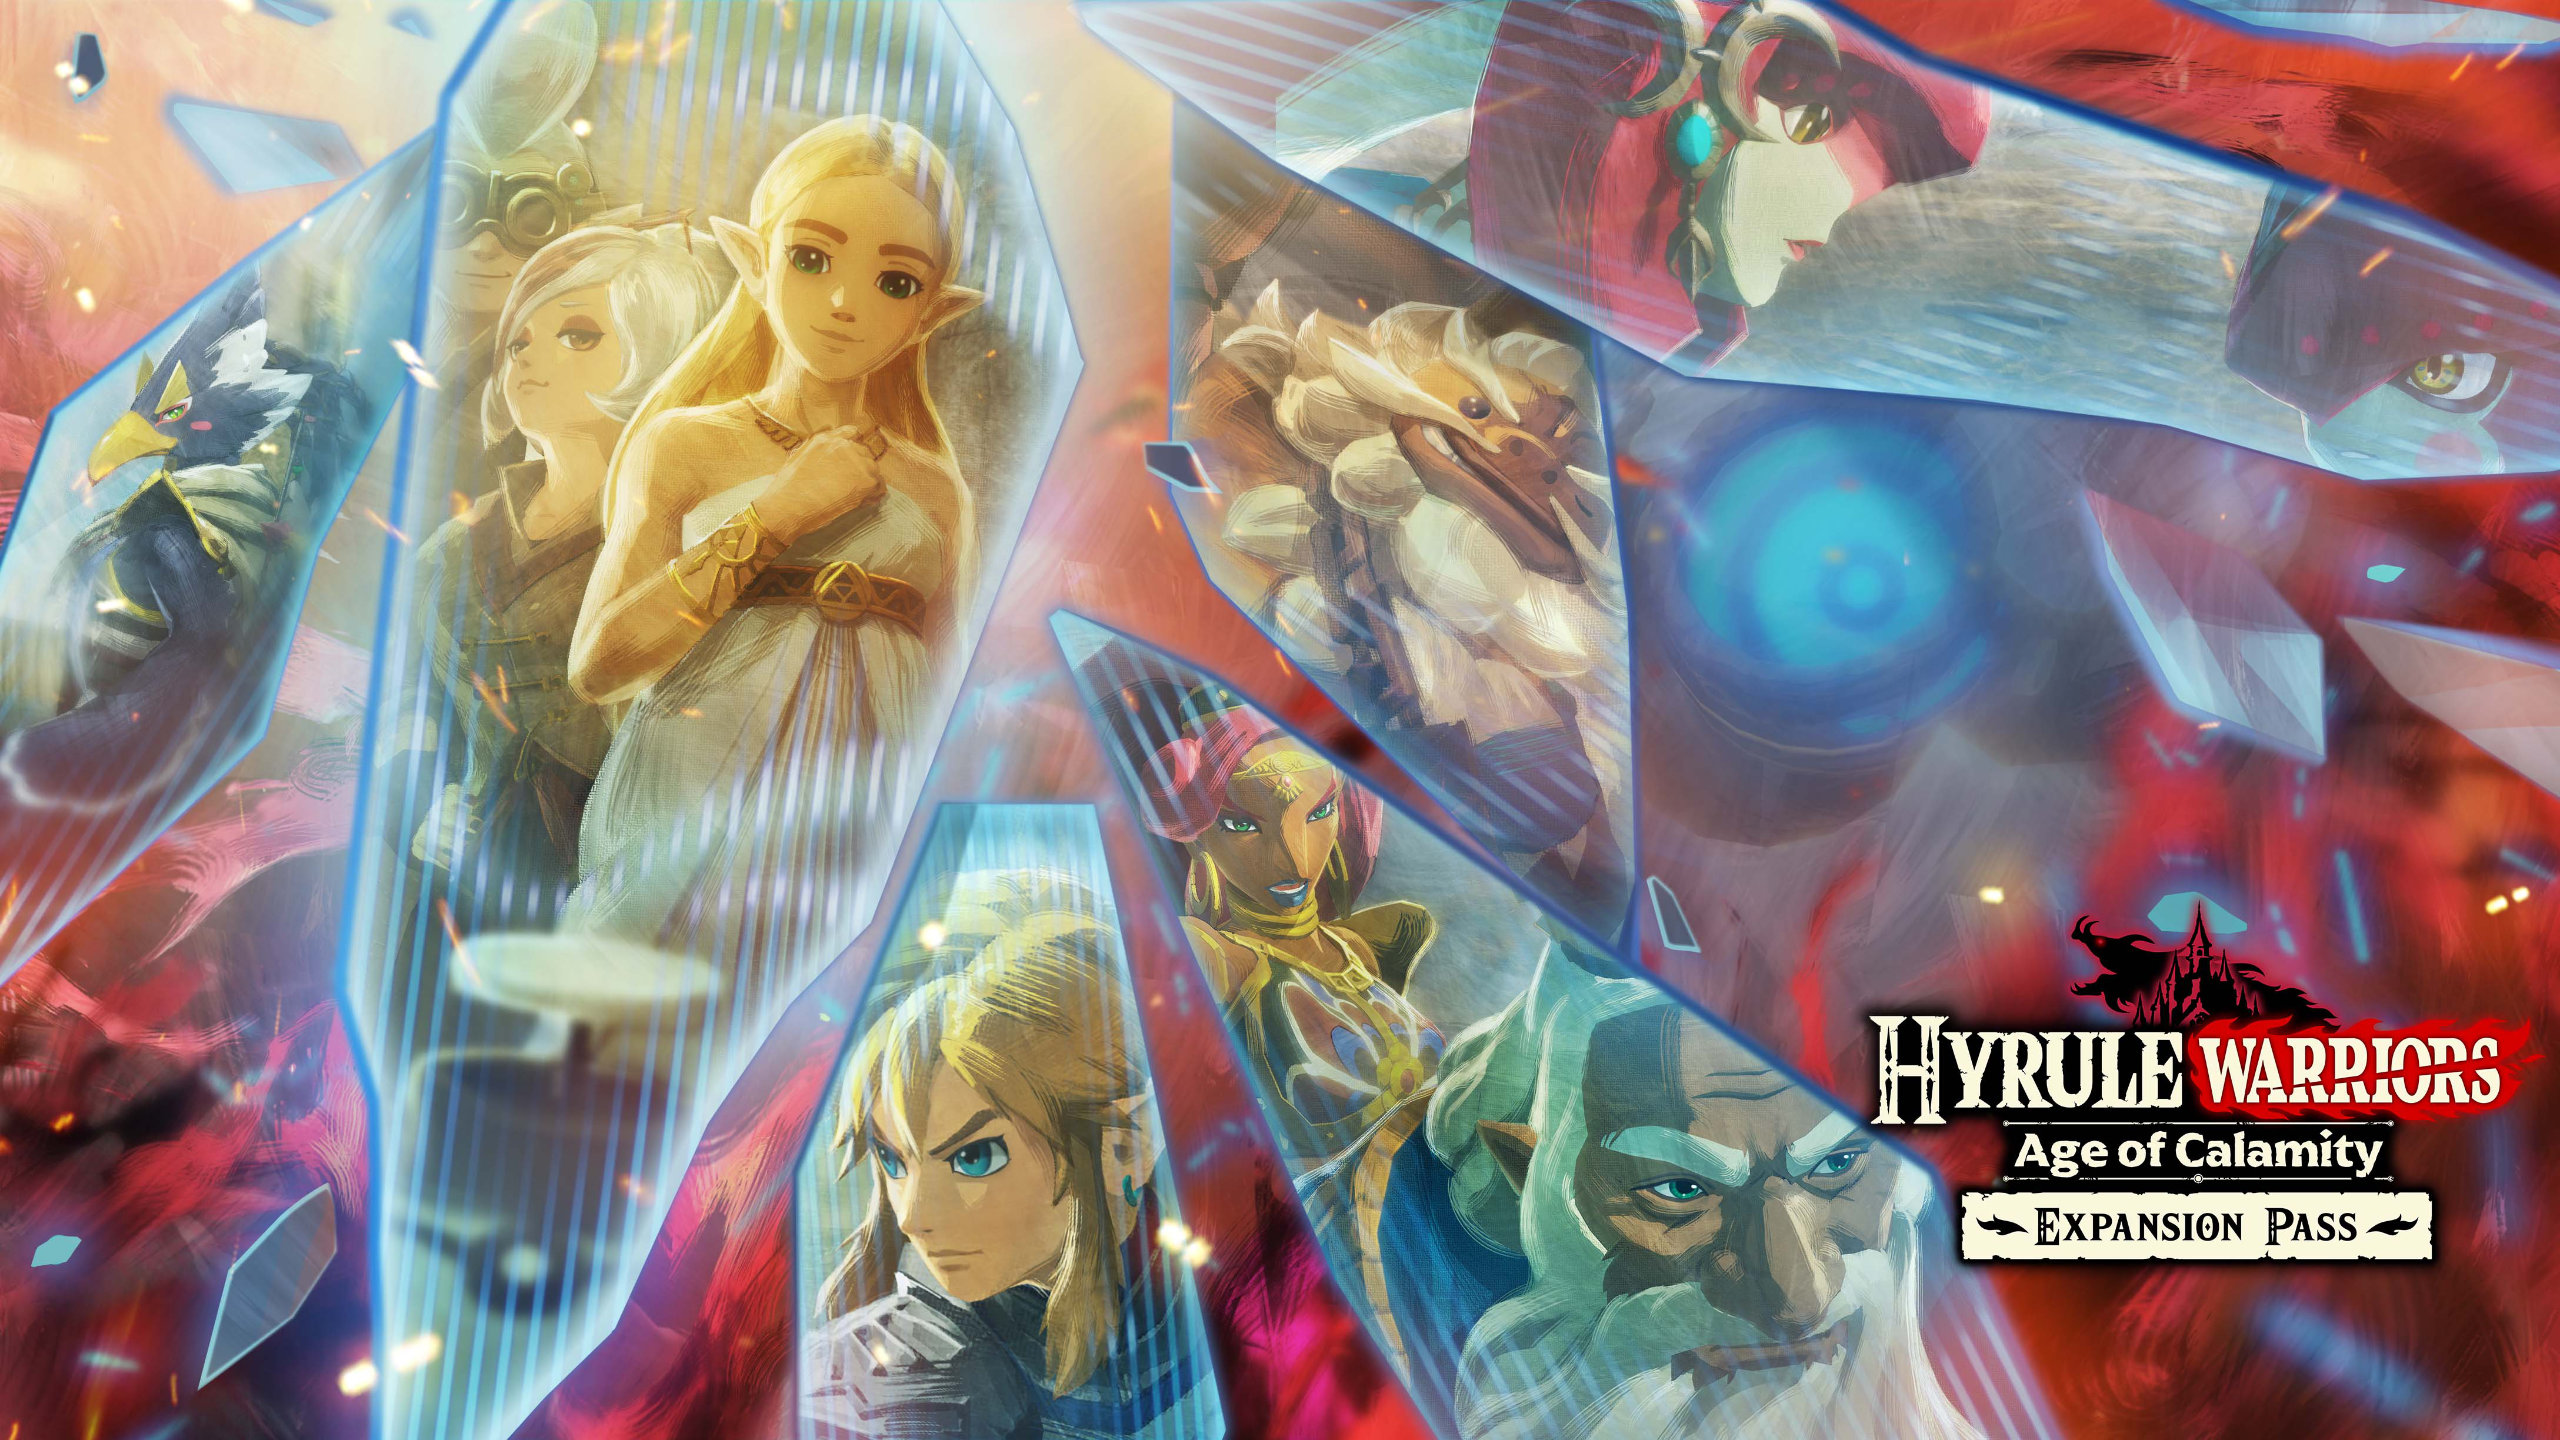 Hyrule Warriors: Age of Calamity artwork of Link, Zelda, and more heroes reflected in scattered shards of glass.